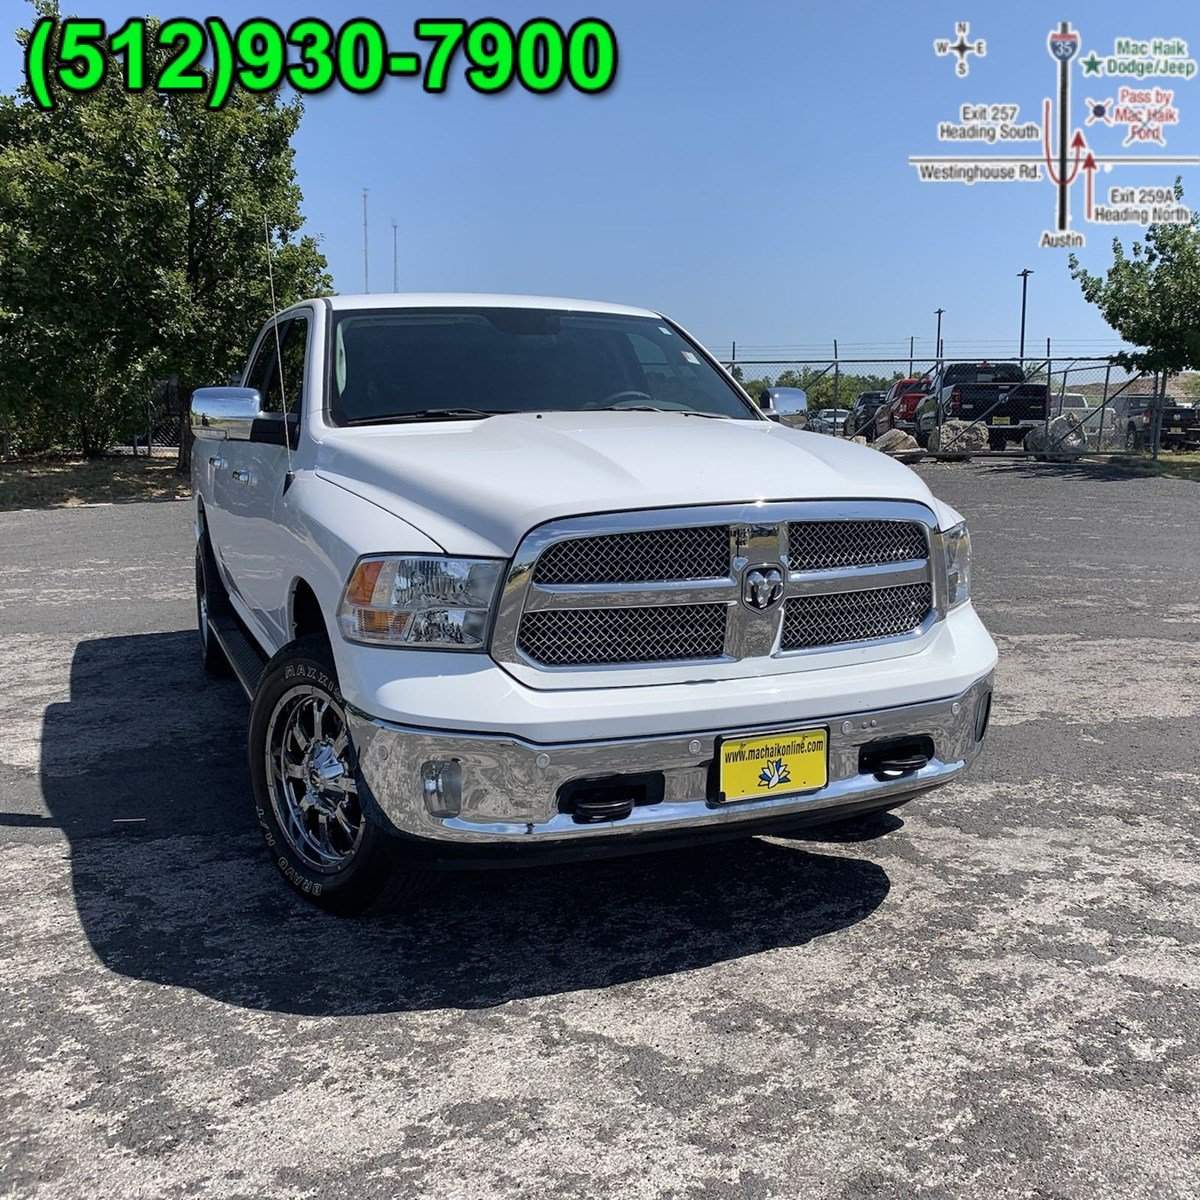 Certified Pre-Owned 2017 Ram 1500 Lone Star Silver